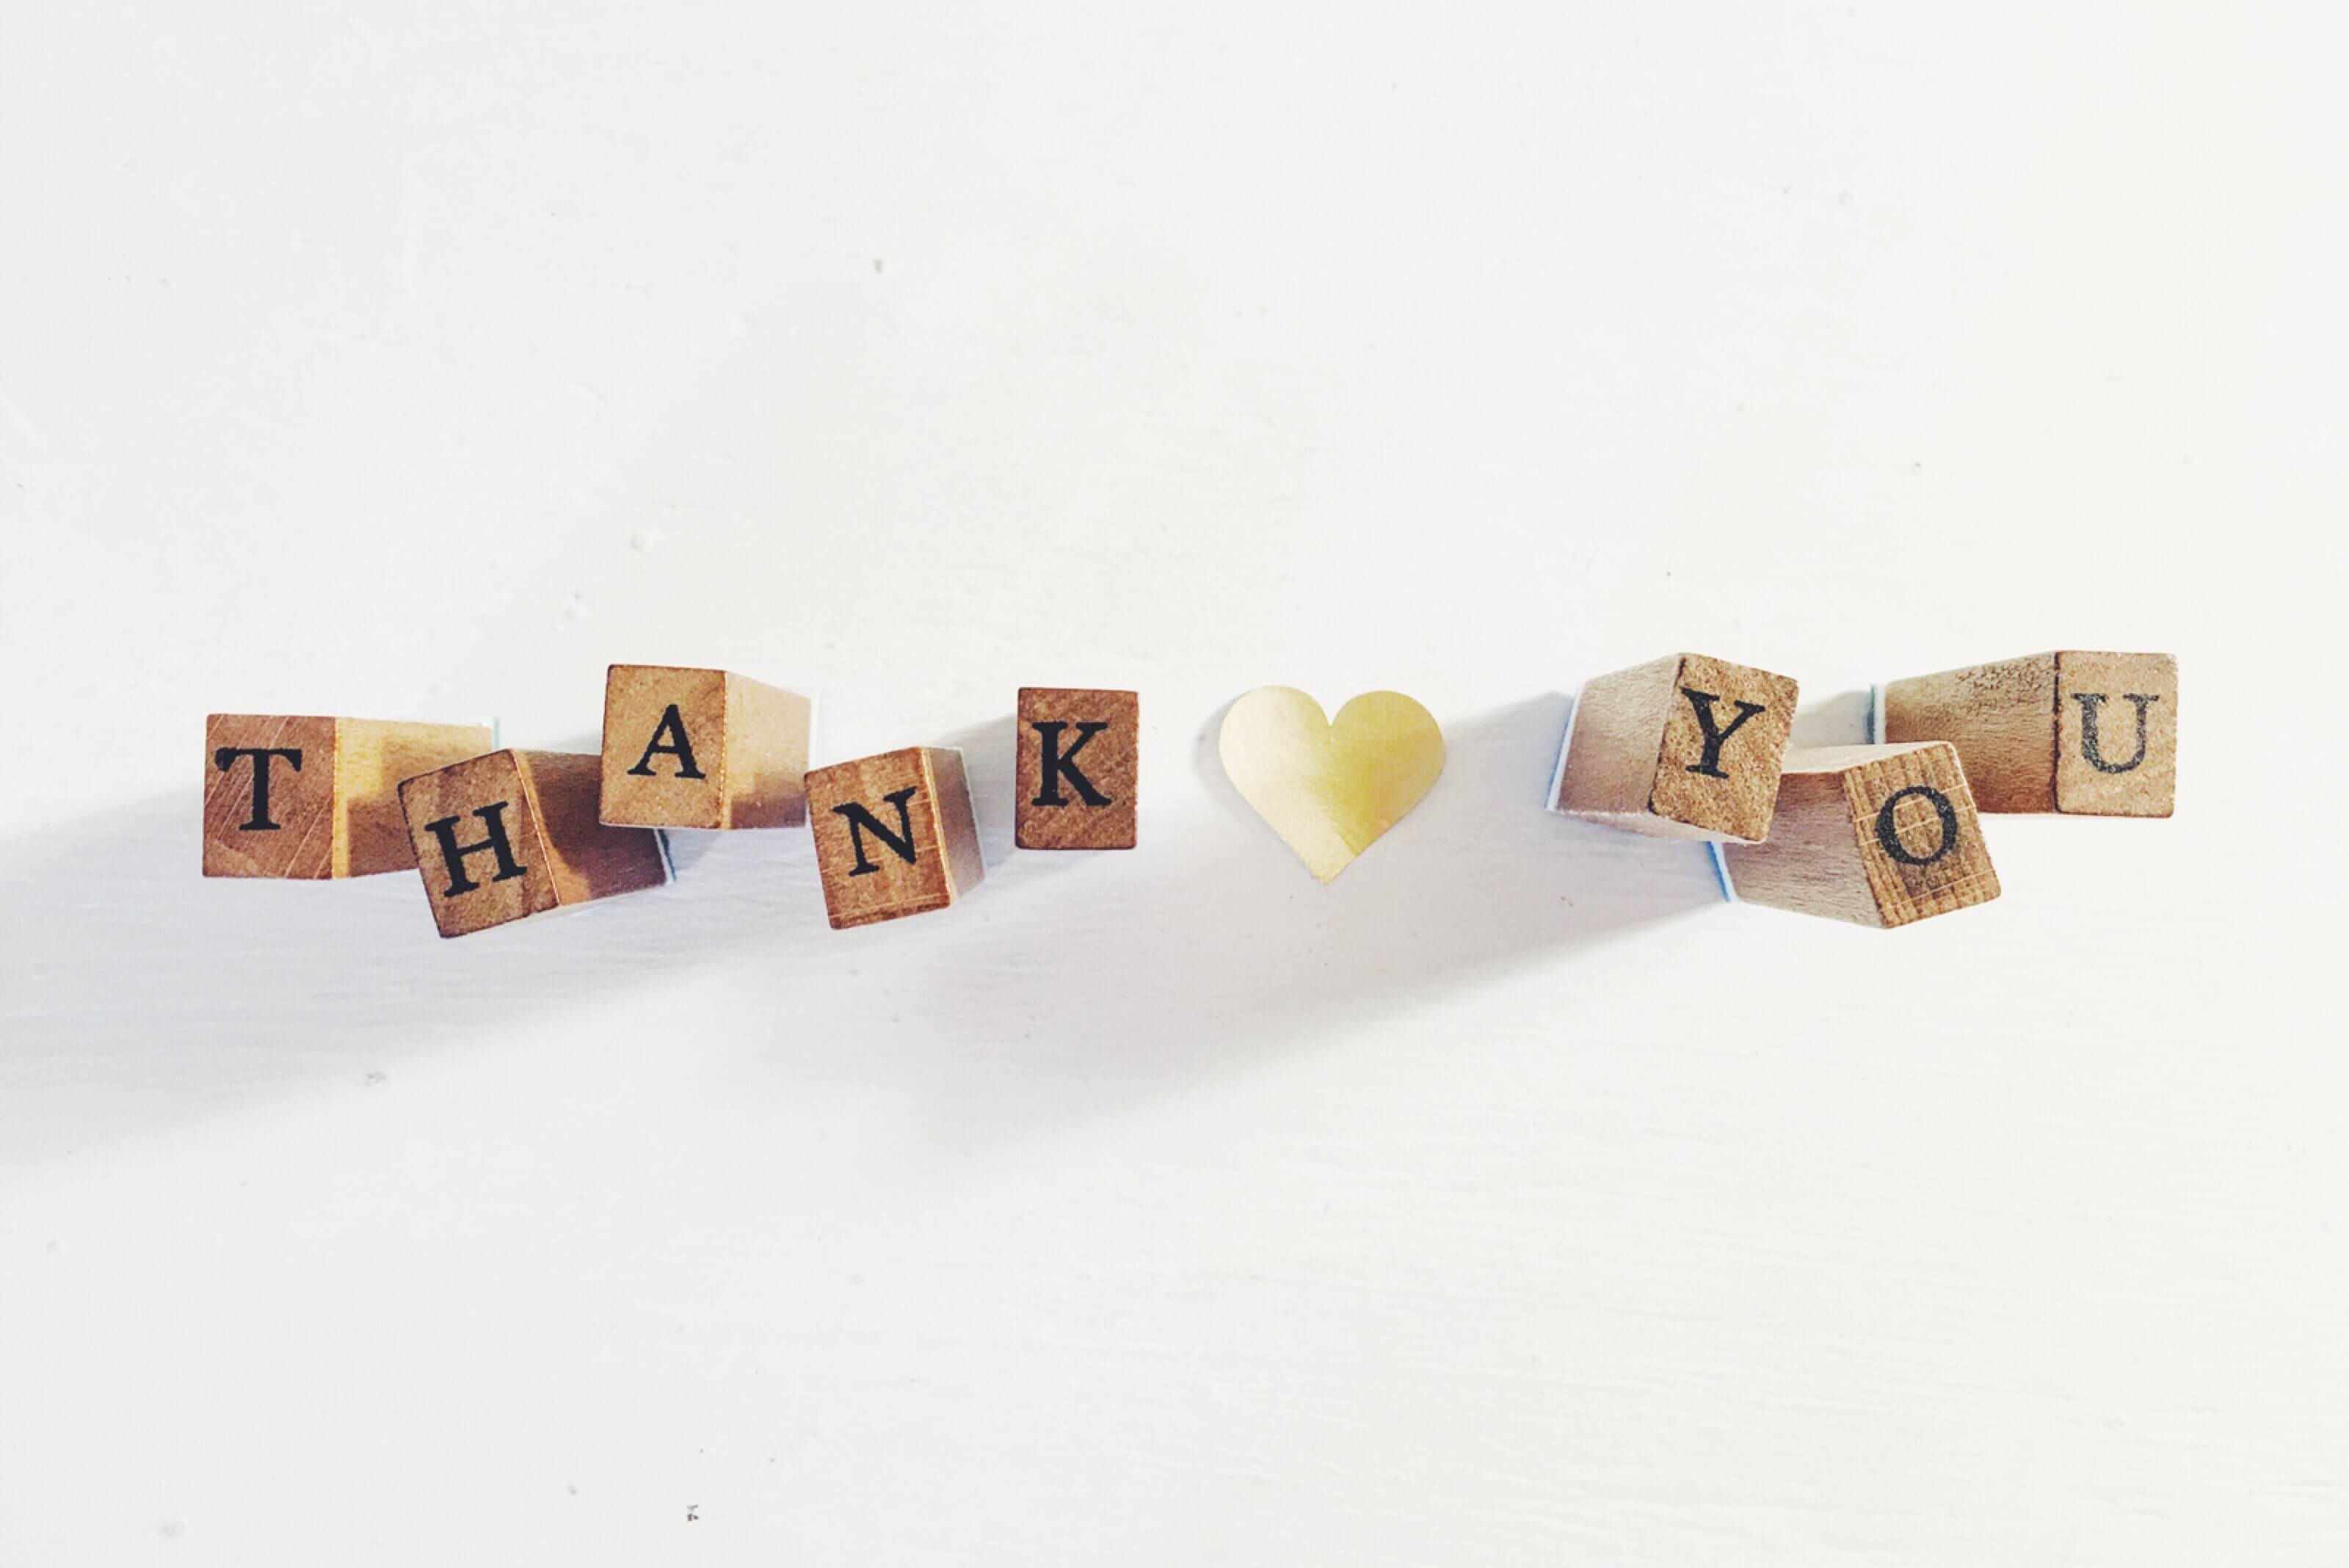 How To Write a Decent Thank-You Note www.widow411.com